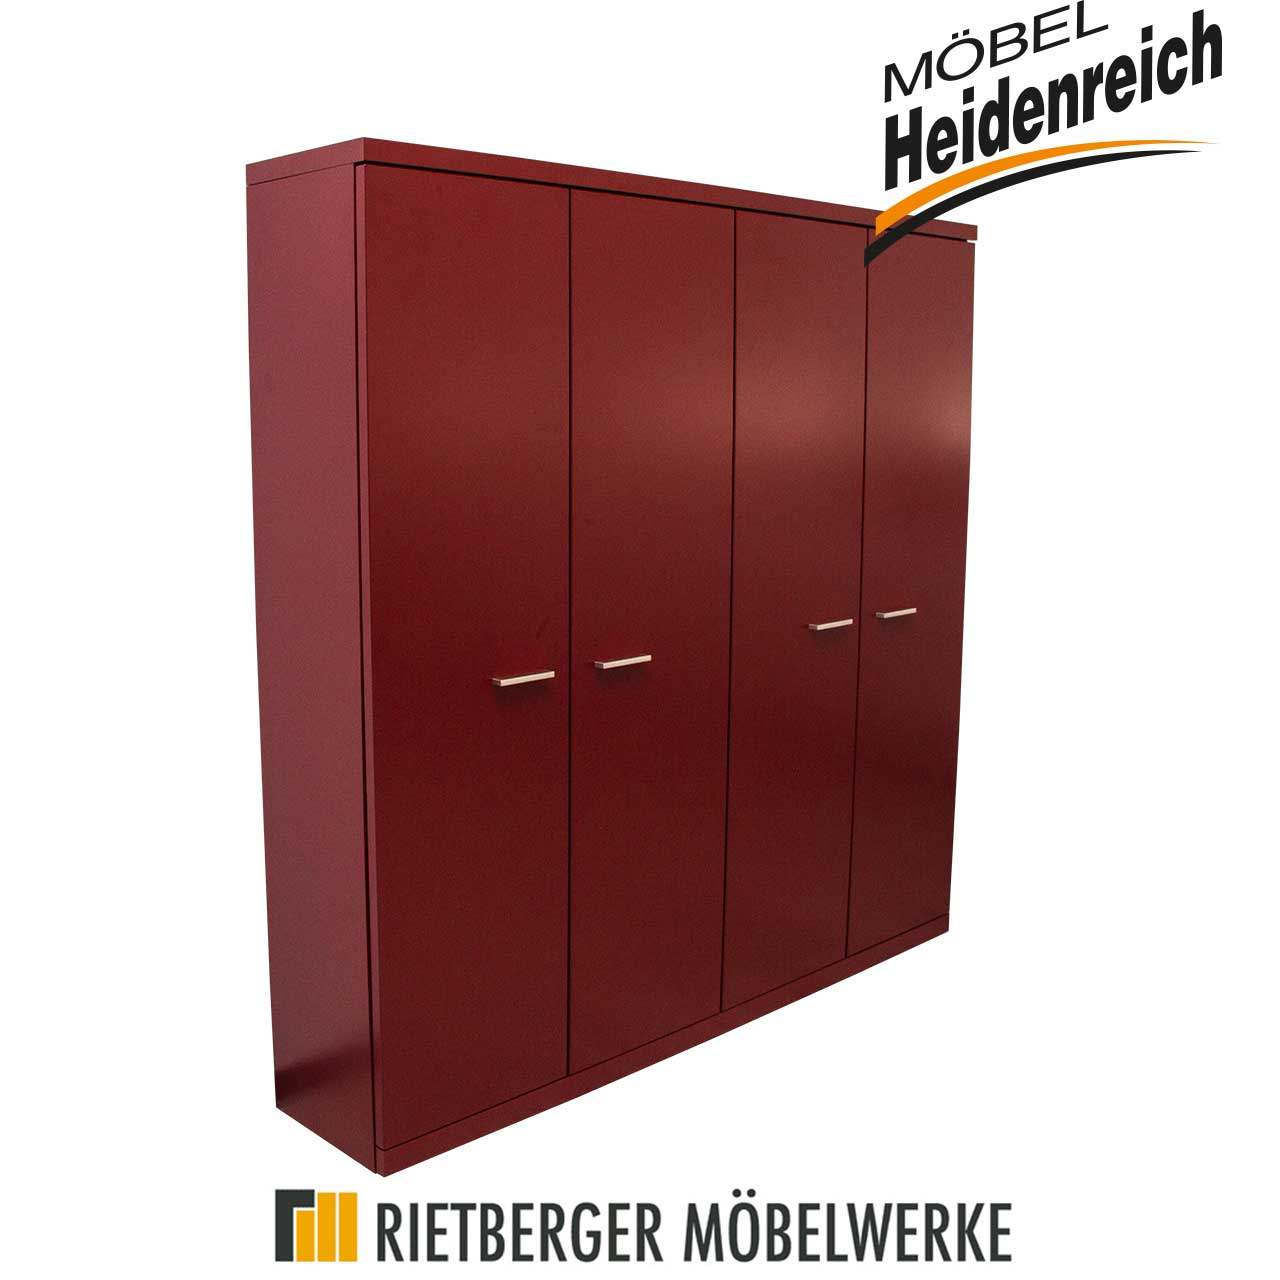 marken m bel sale bei m bel heidenreich m bel heidenreich. Black Bedroom Furniture Sets. Home Design Ideas